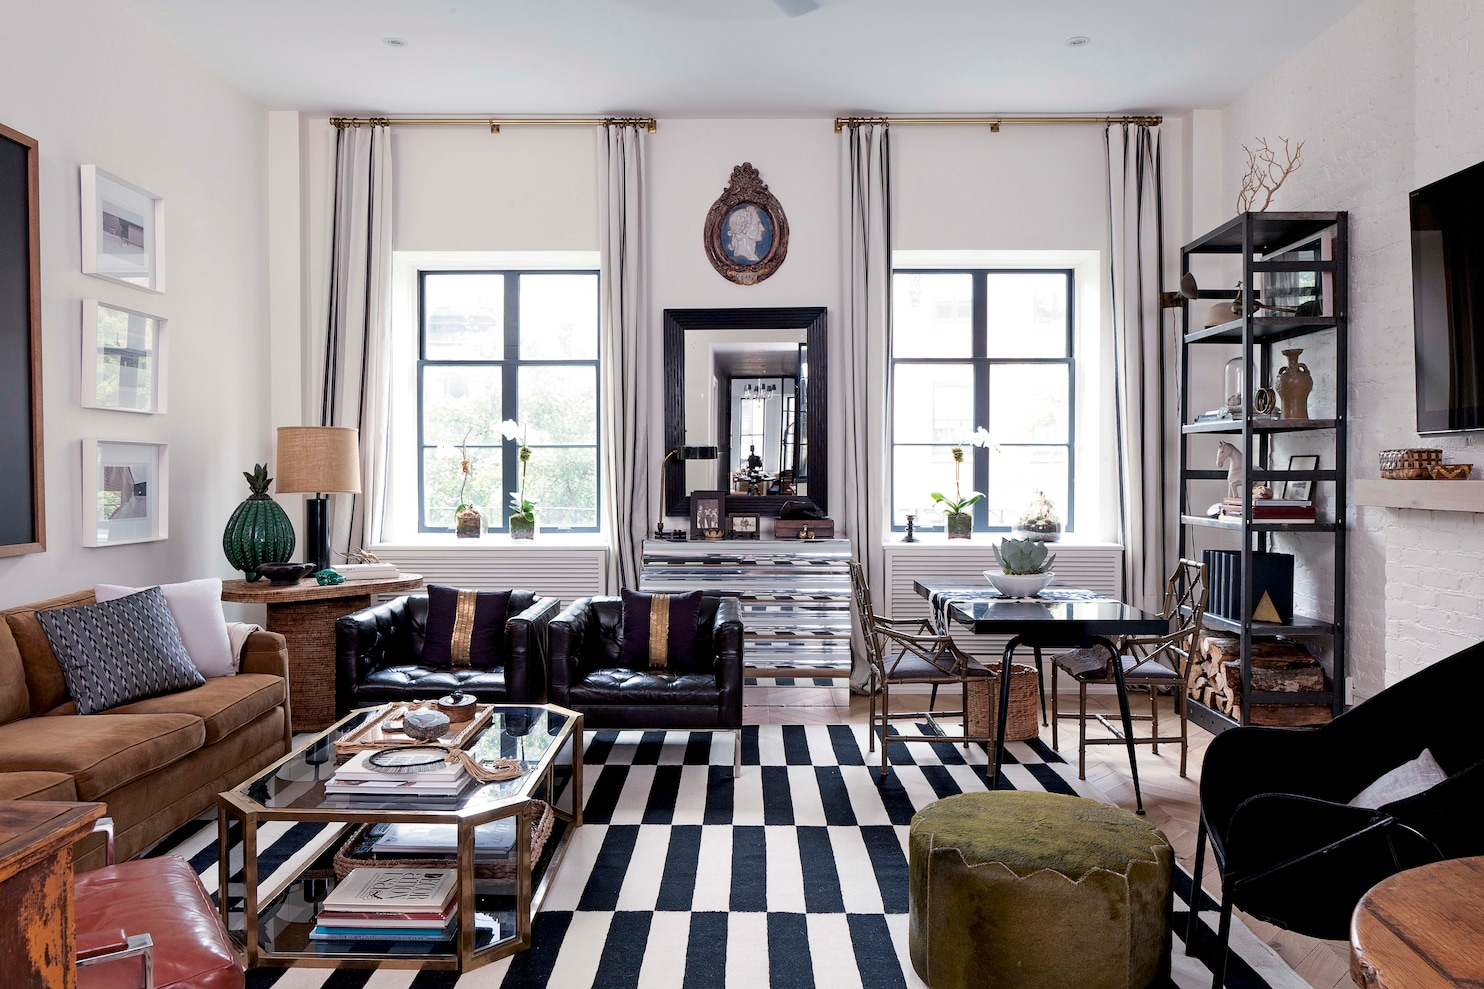 5 Rules Of Design From Nate Berkus The Washington Post